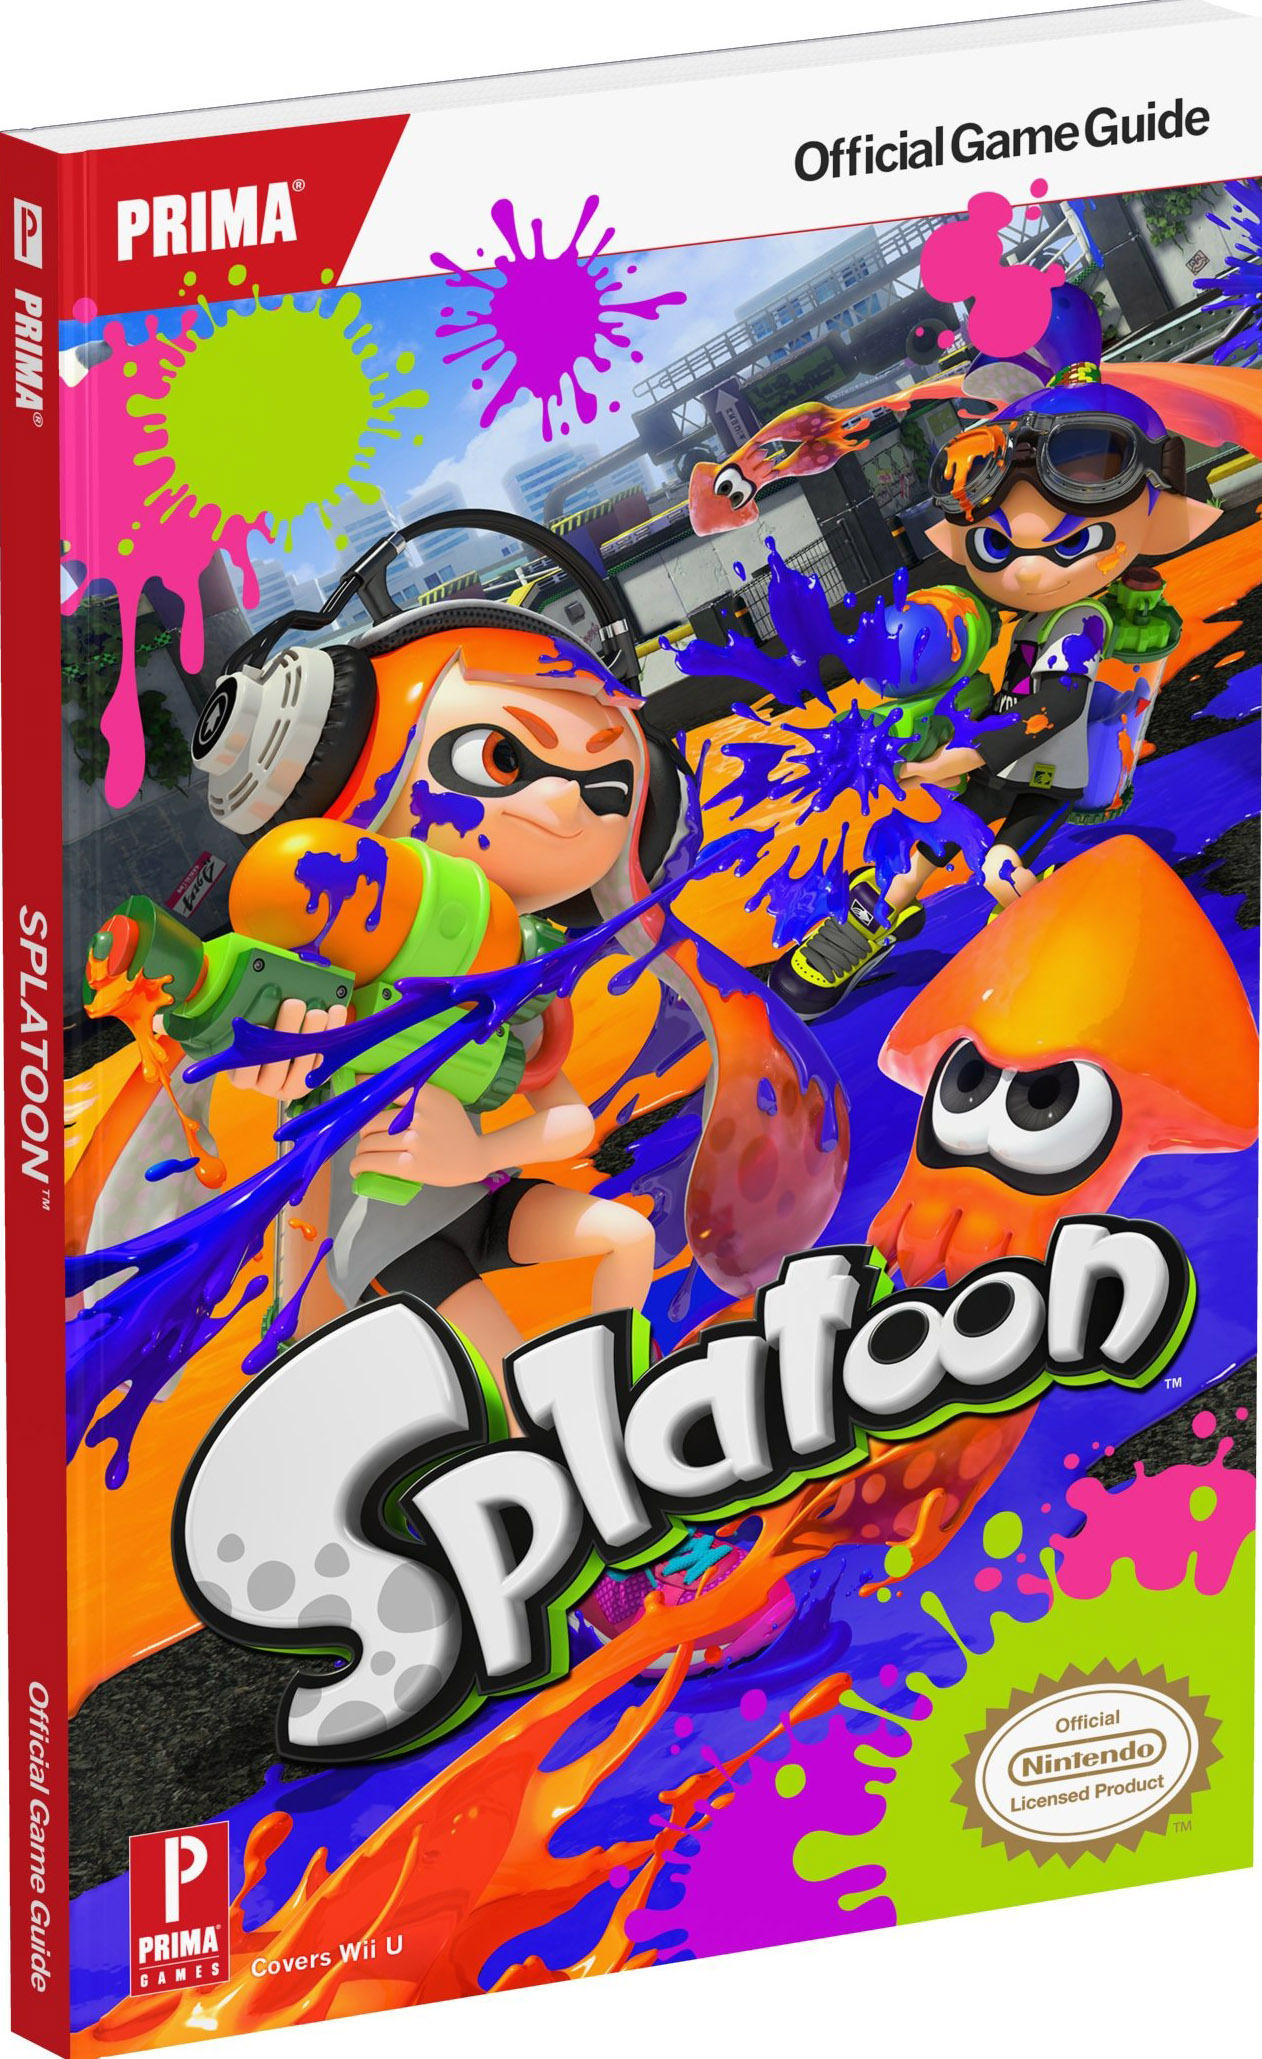 Splatoon Official Guide by Prima